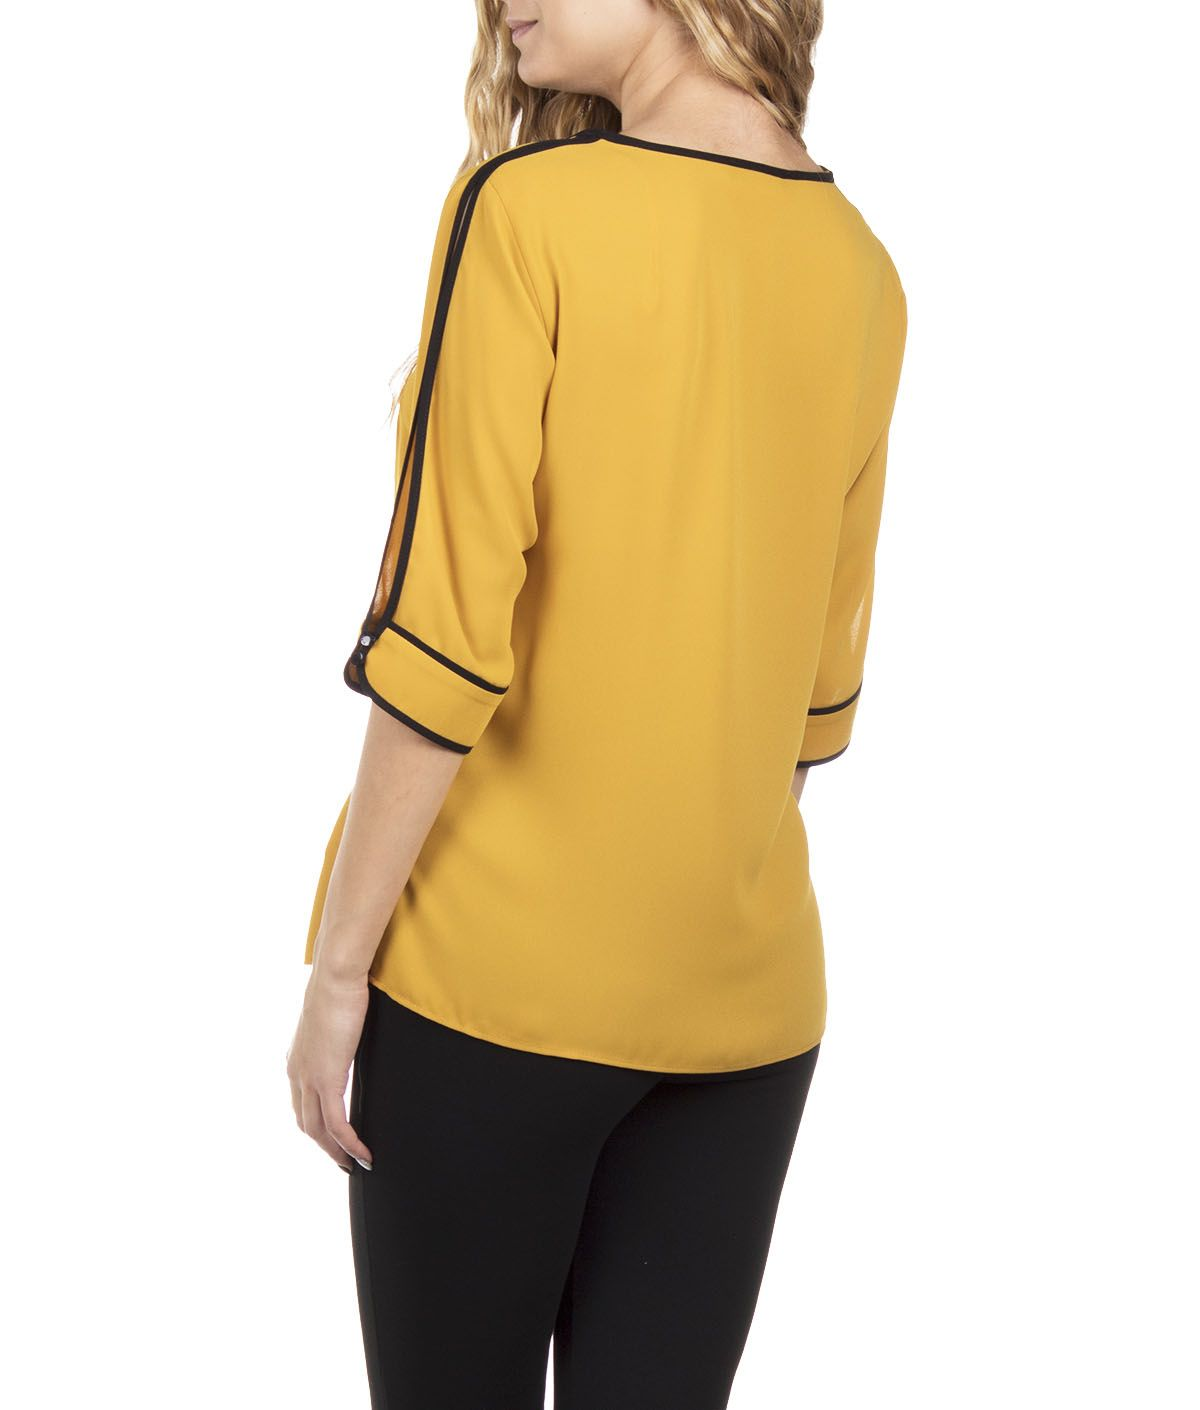 BLOUSE WITH ¾ SLEEVES V NECKLINE AND BLACK PIPPING